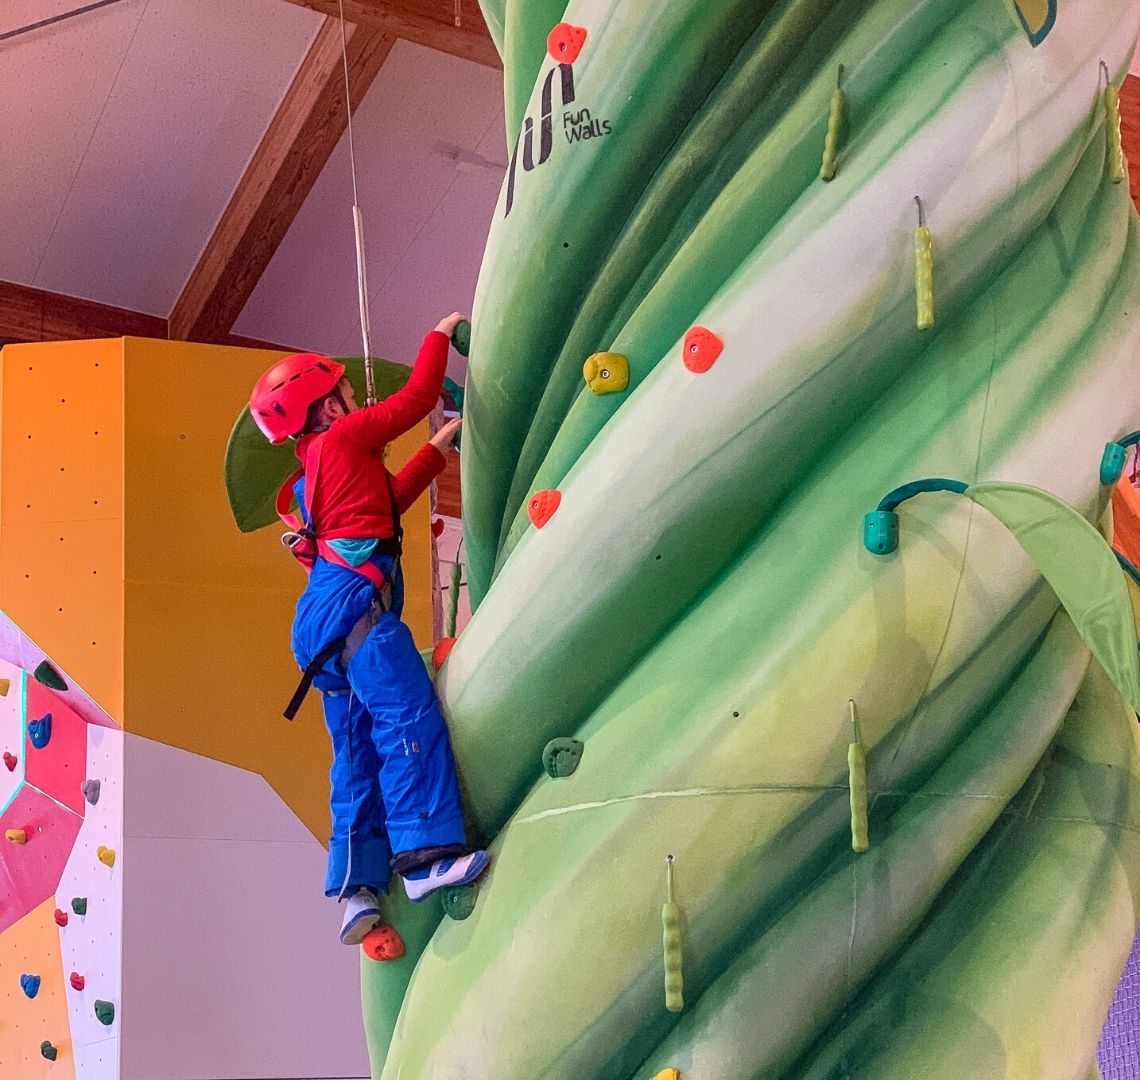 5 reasons to go family skiing in Niseko Thing 1 is wearing a bright red helmet, a bright red fleece and bright blue salopettes. He is near the top of a green climbing wall.